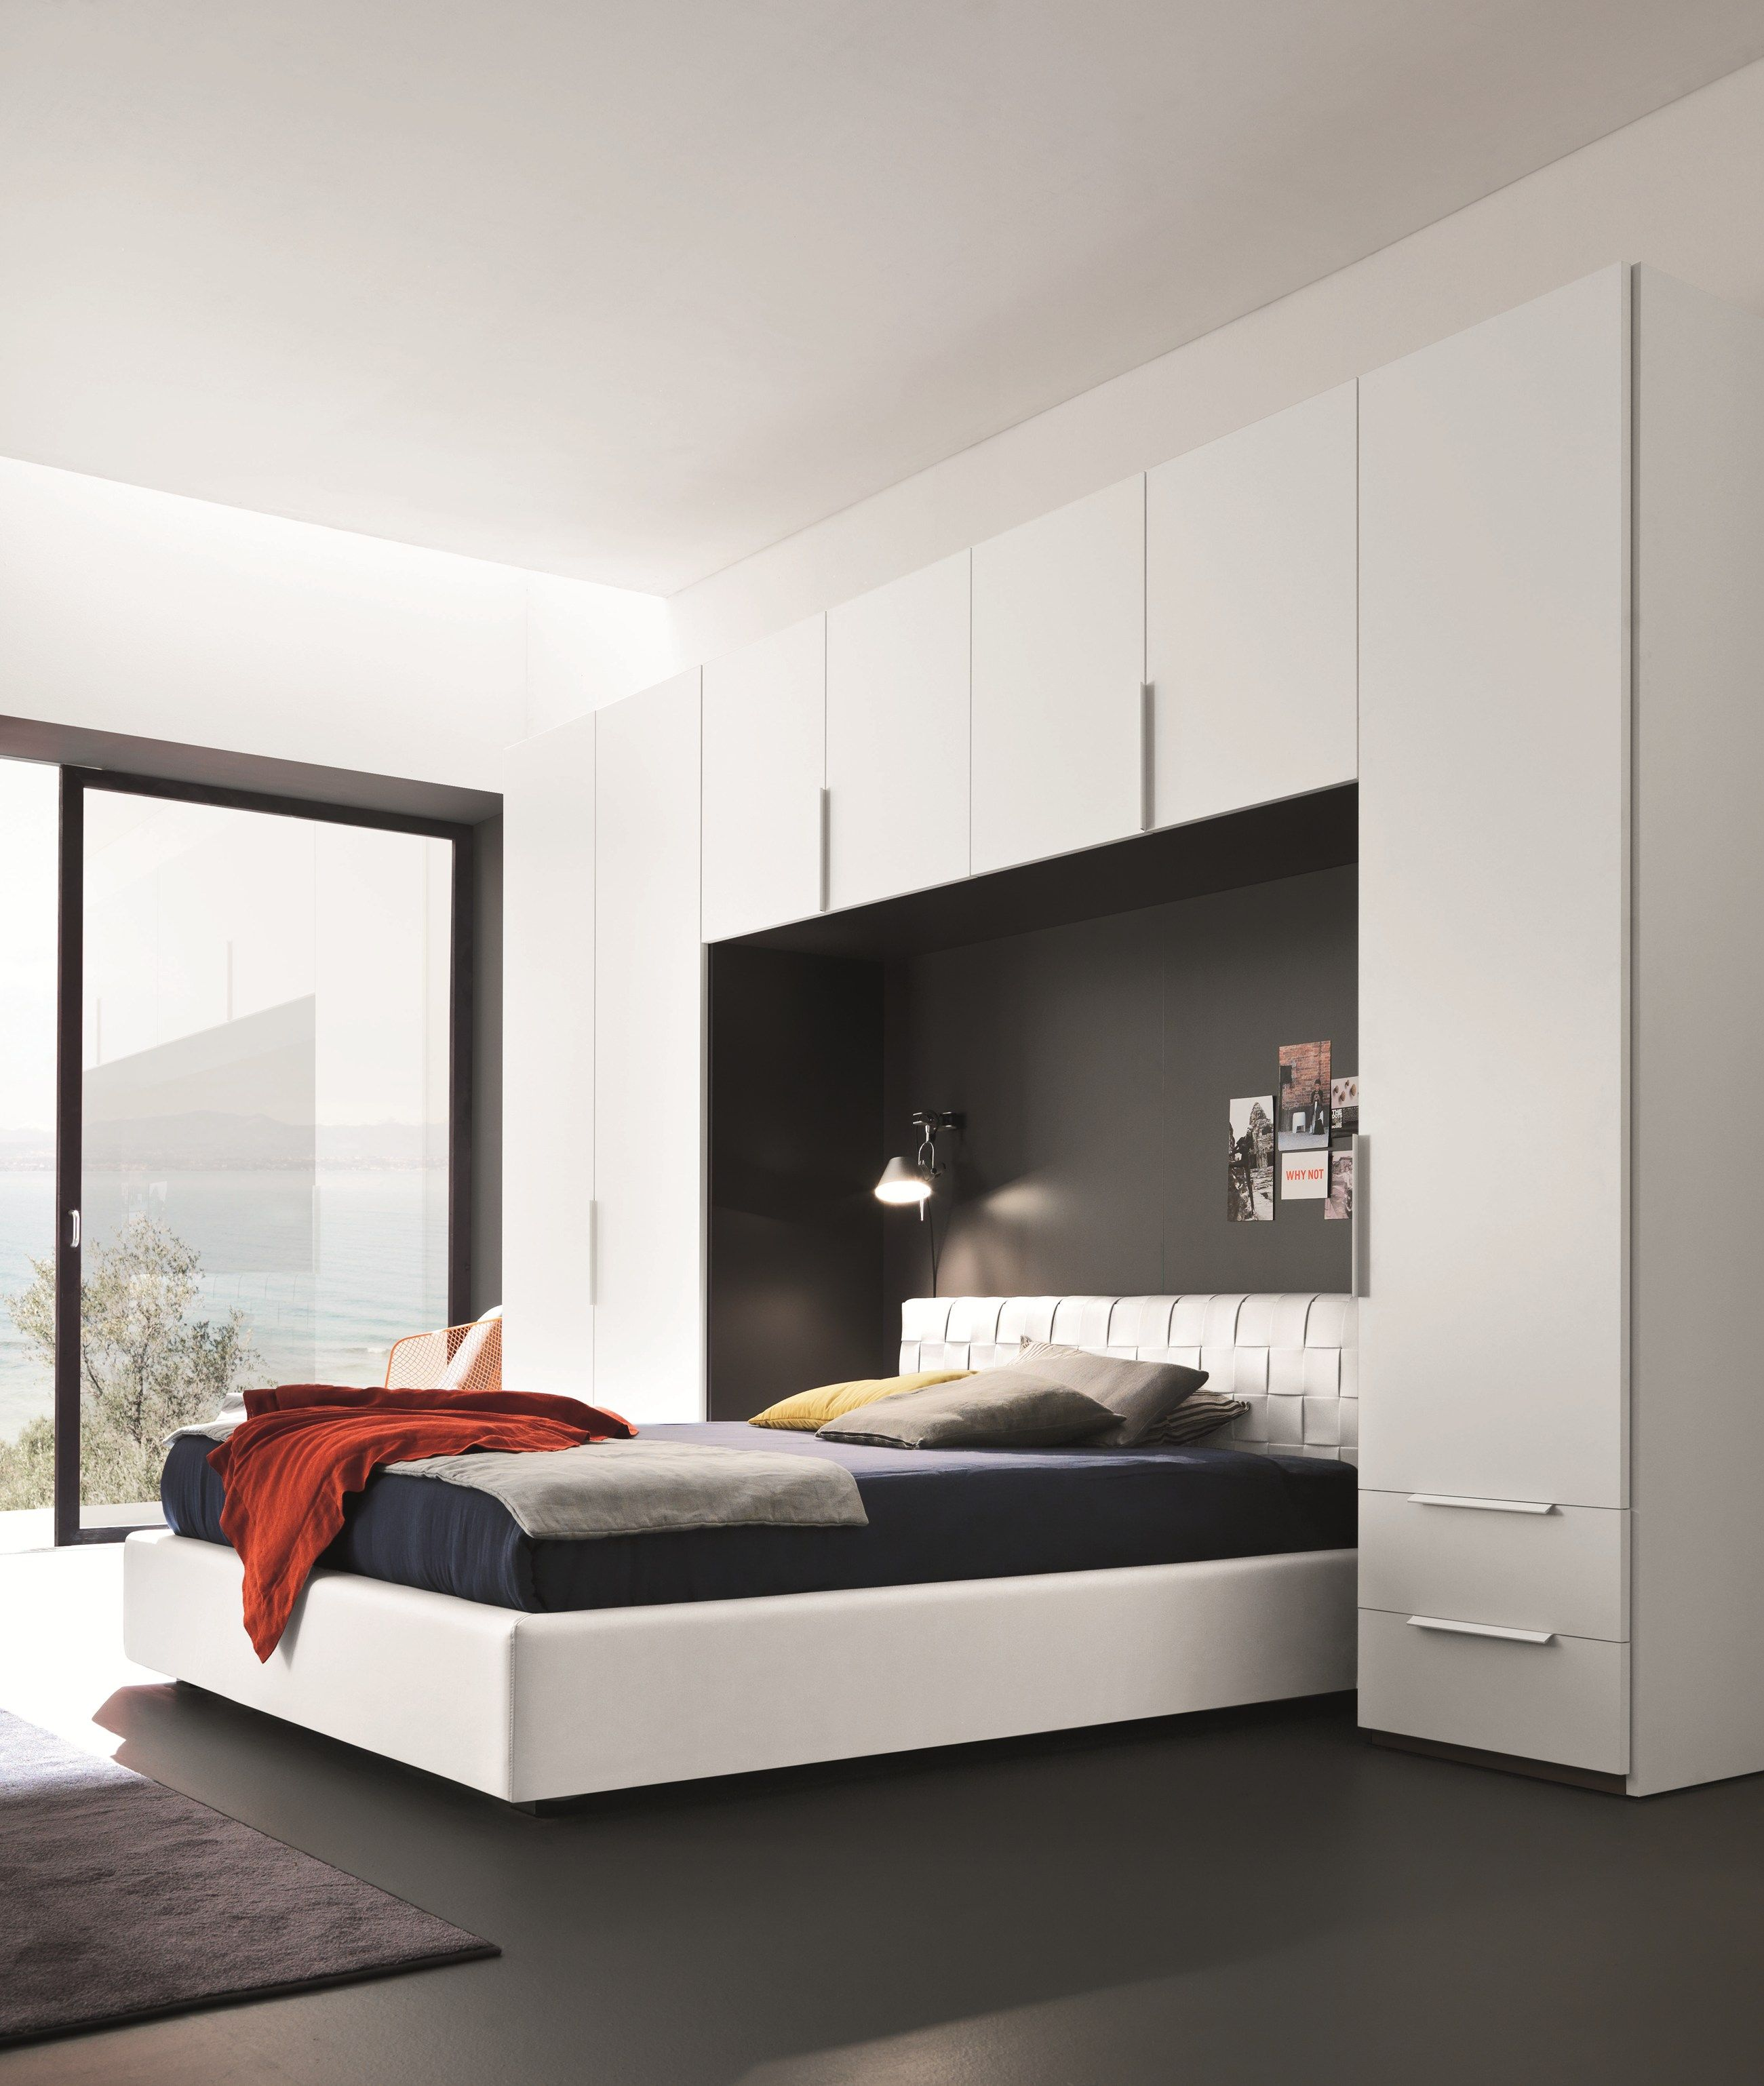 Lit Pont Design Armoire Pont De Lit Design Idee In 2019 Bedroom Bedroom